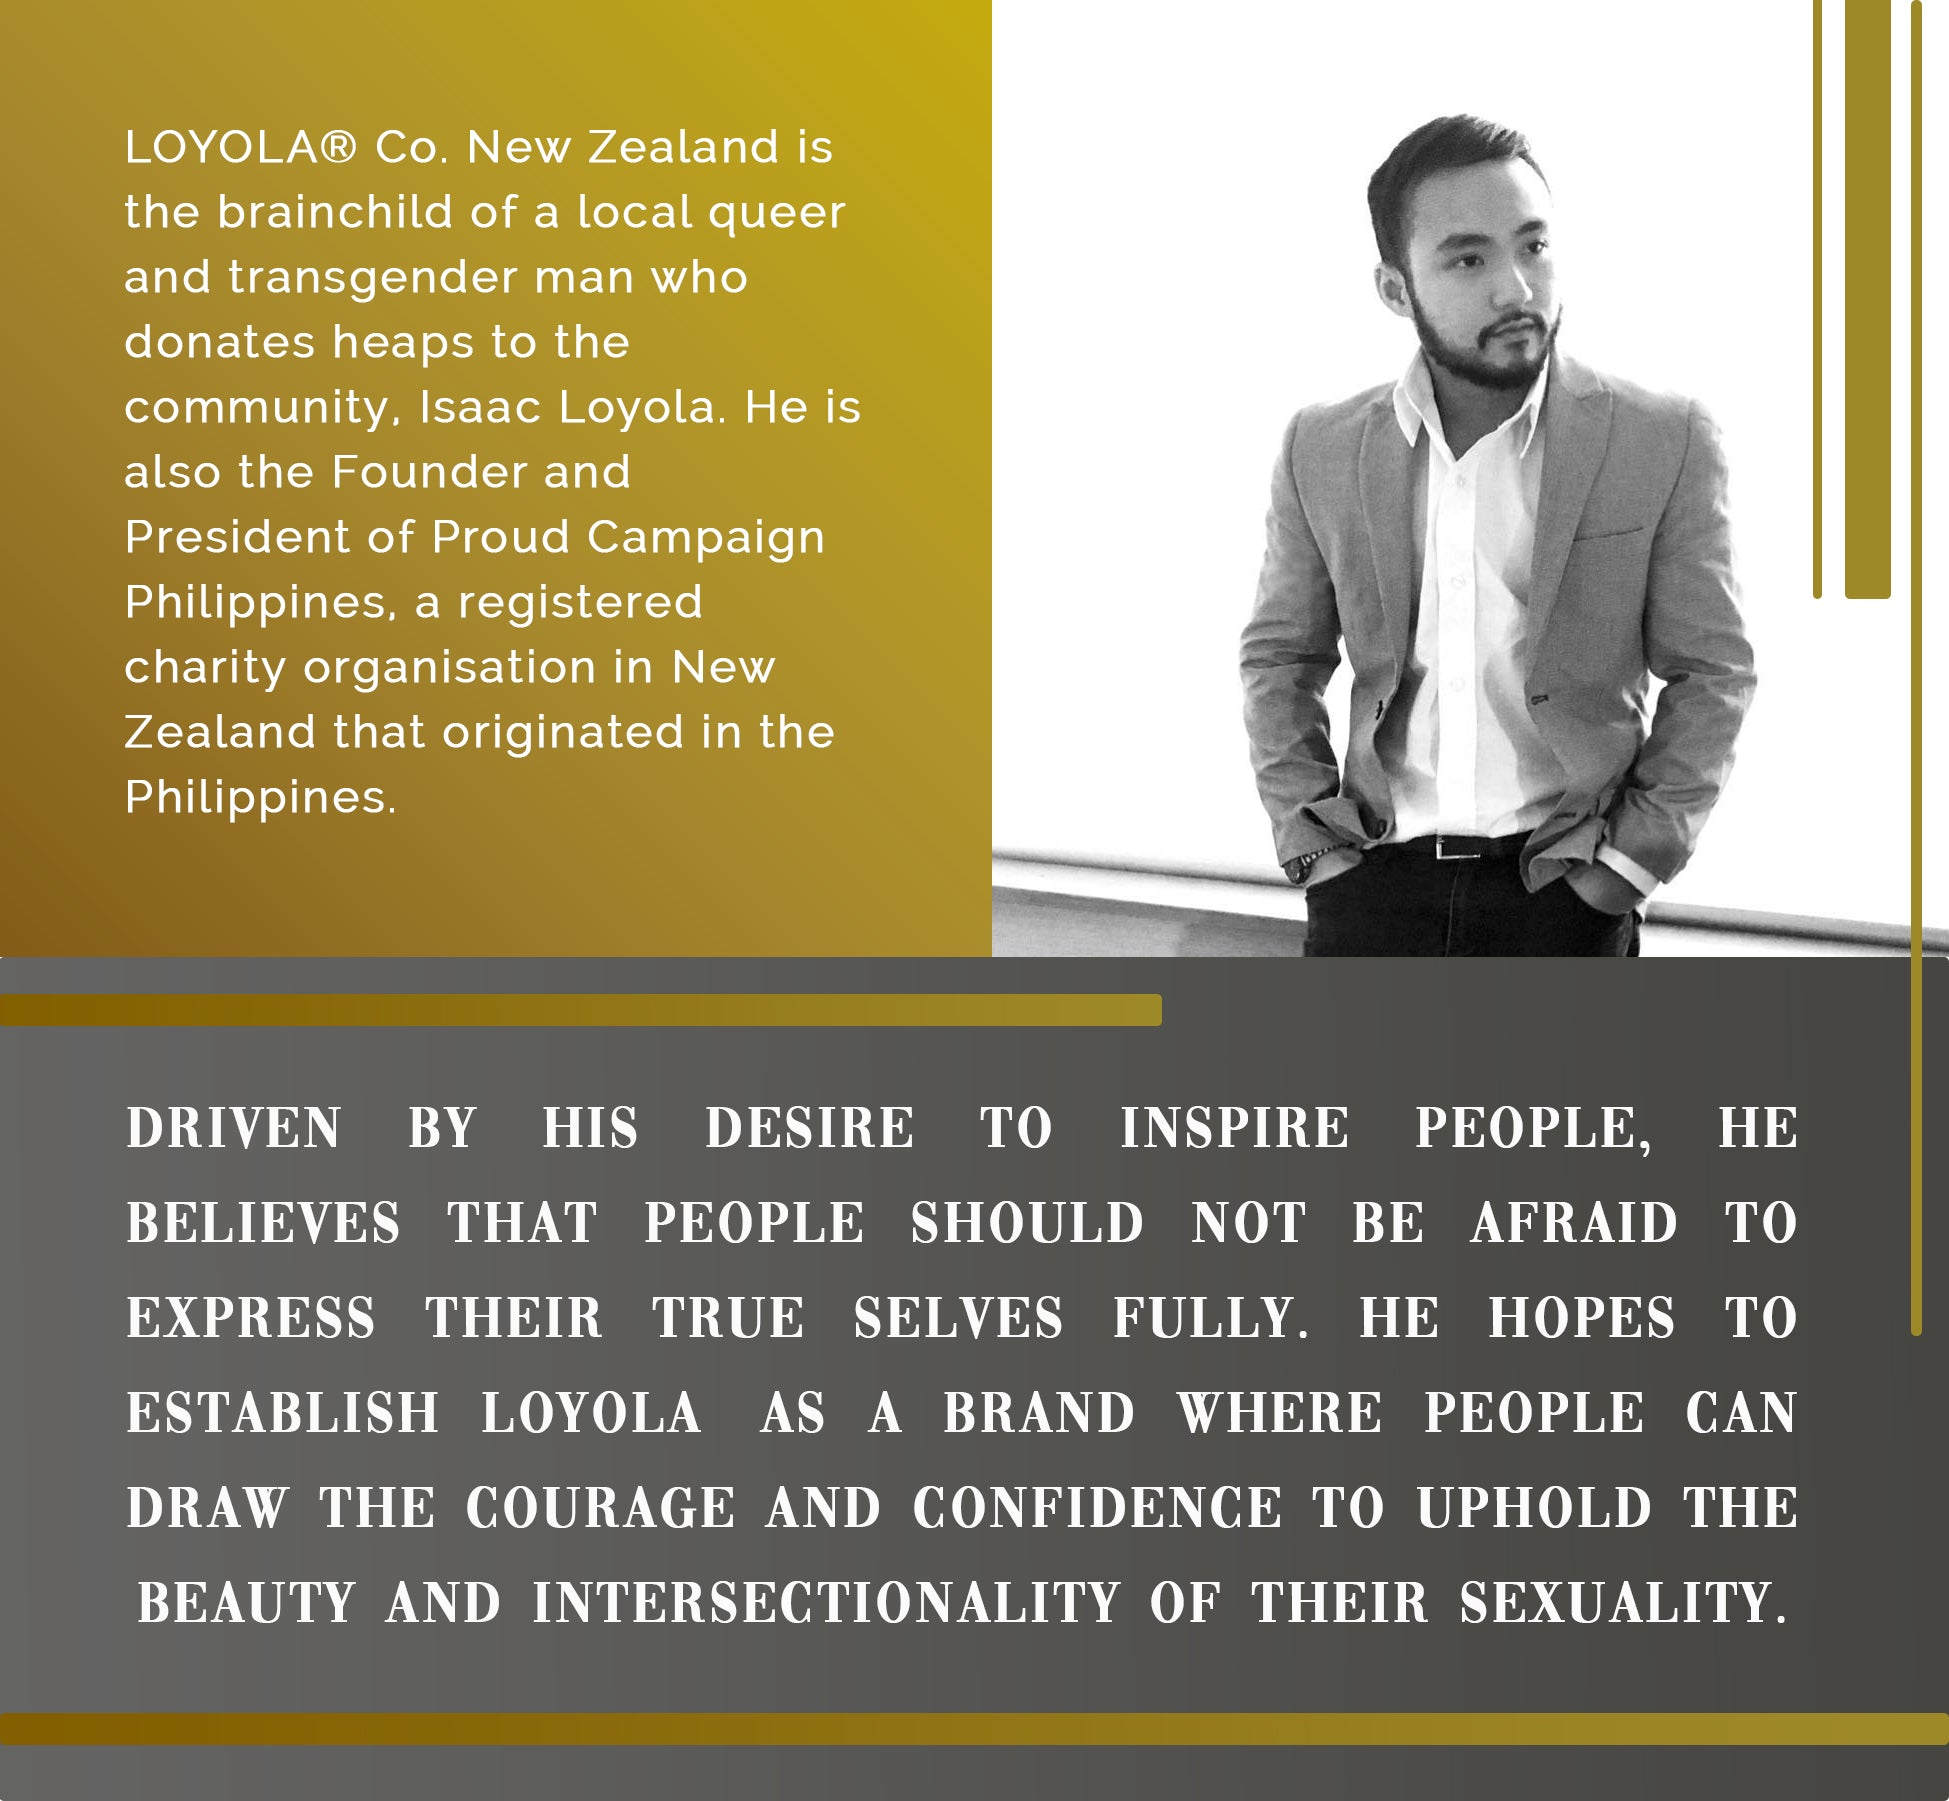 Isaac Loyola | Owner and Creative Director